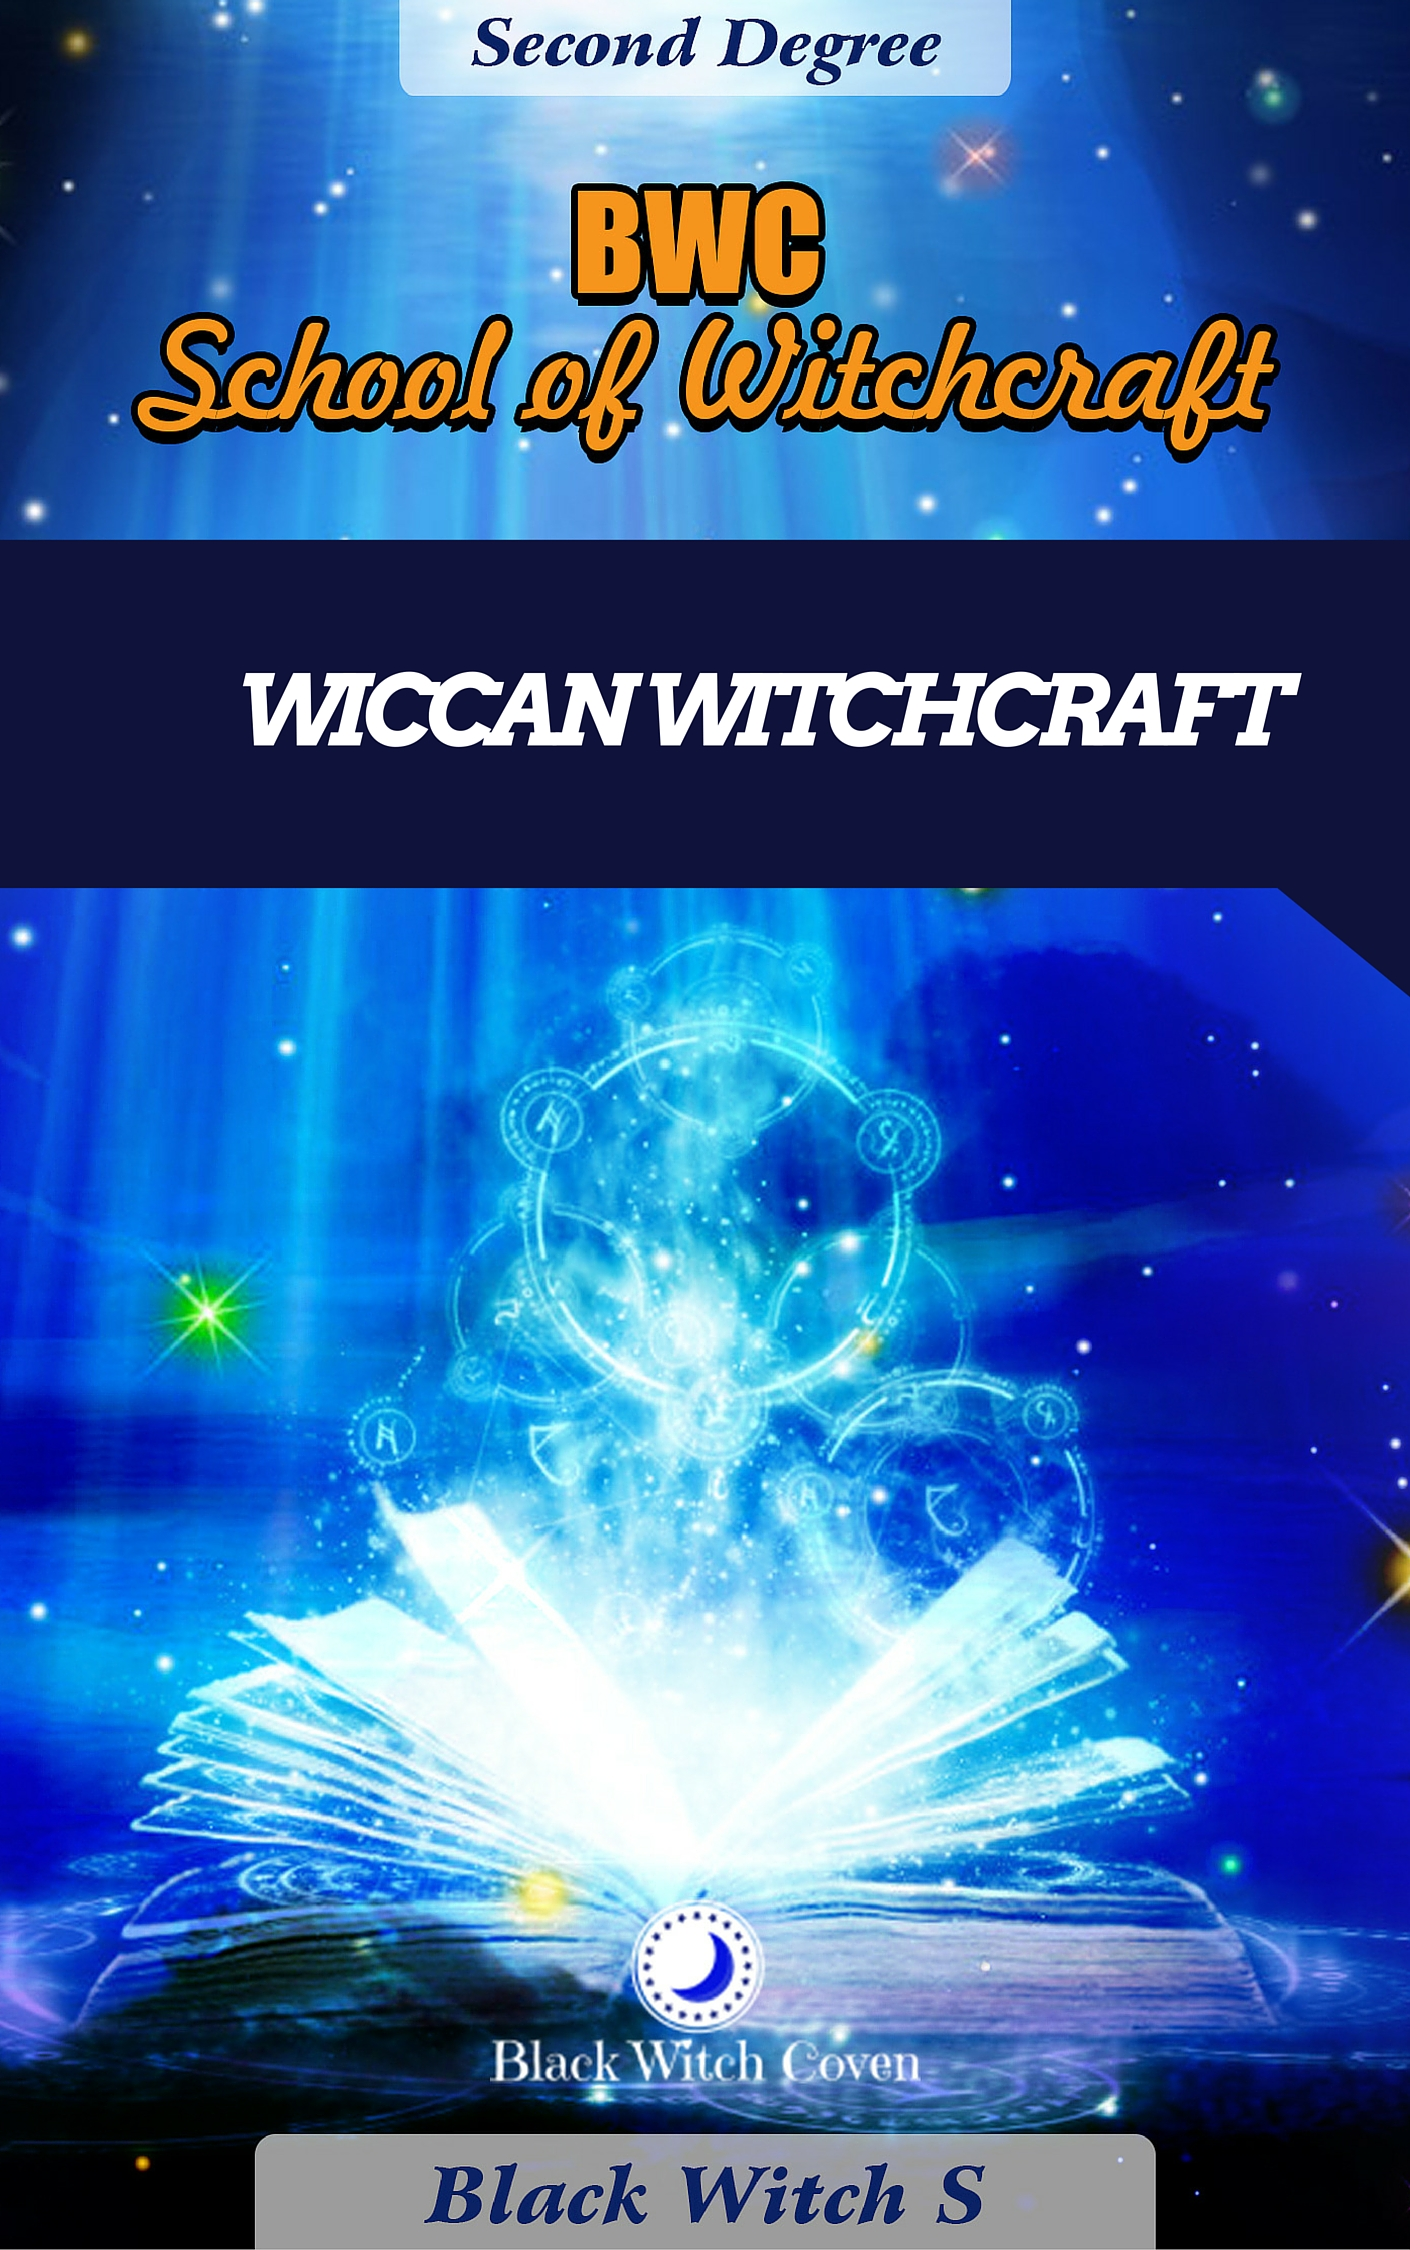 Witchcraft Second Degree. Wiccan Themed.